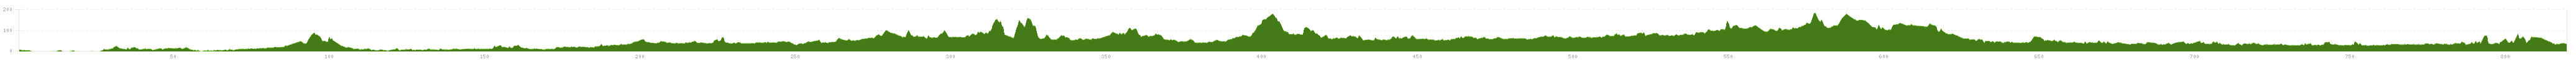 Elevation profile Cycle Route Amsterdam-Berlin